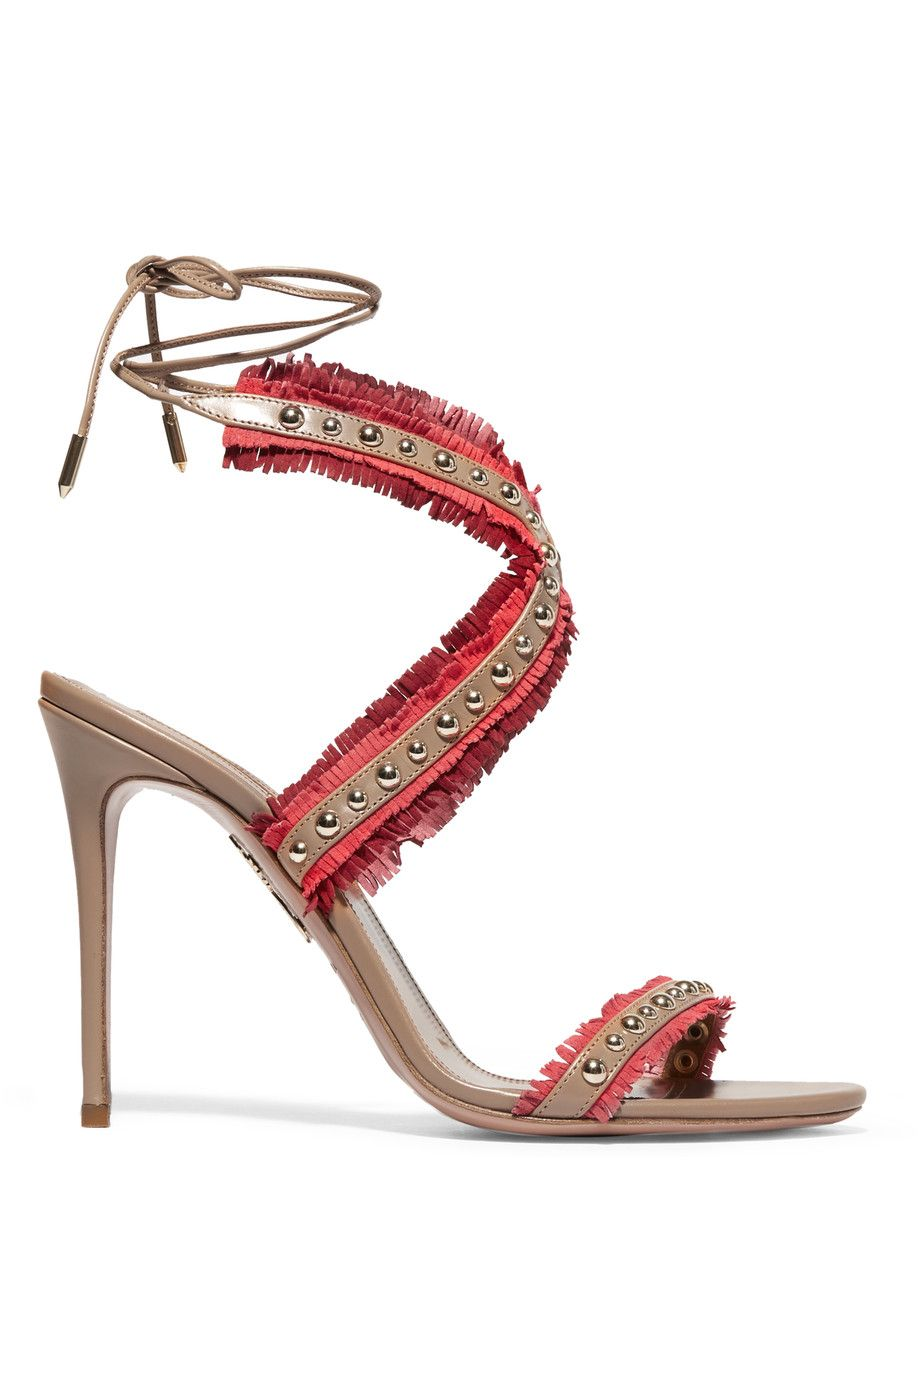 Aquazzura Studded Fringe Sandals clearance websites free shipping how much low cost cheap price M9ioC5Wb